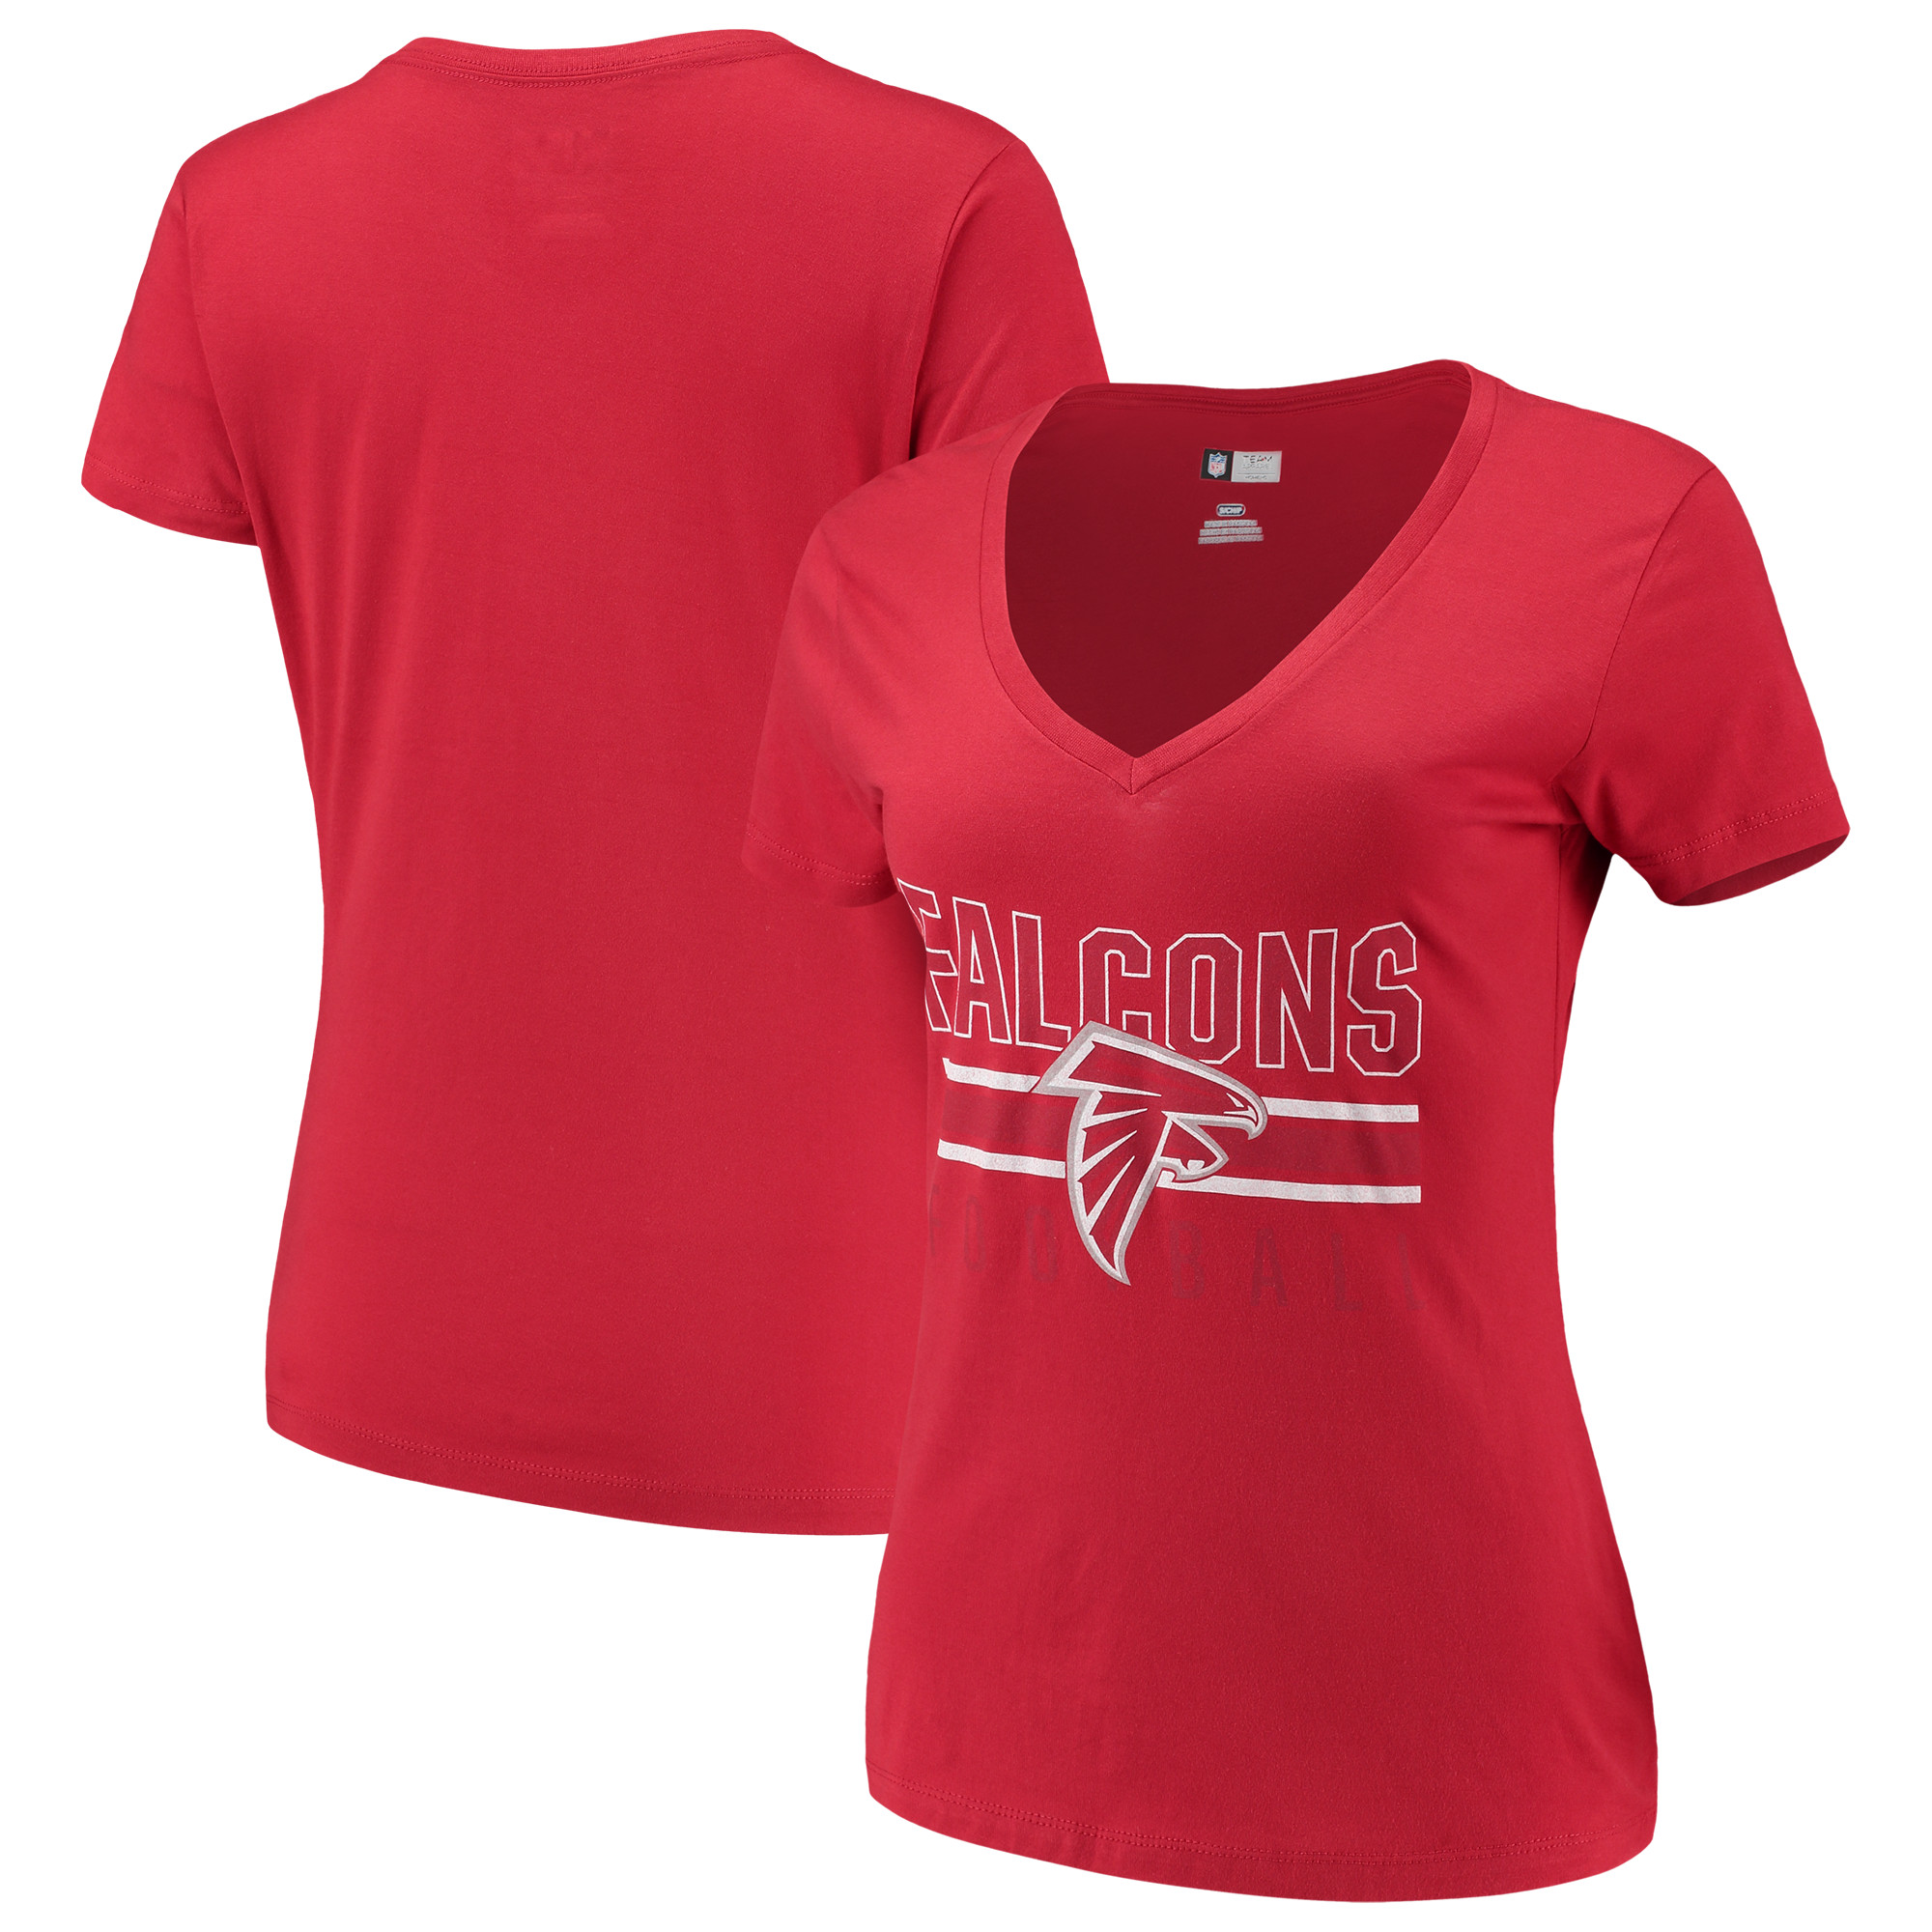 Women's Majestic Red Atlanta Falcons Game Day Style V-Neck T-Shirt